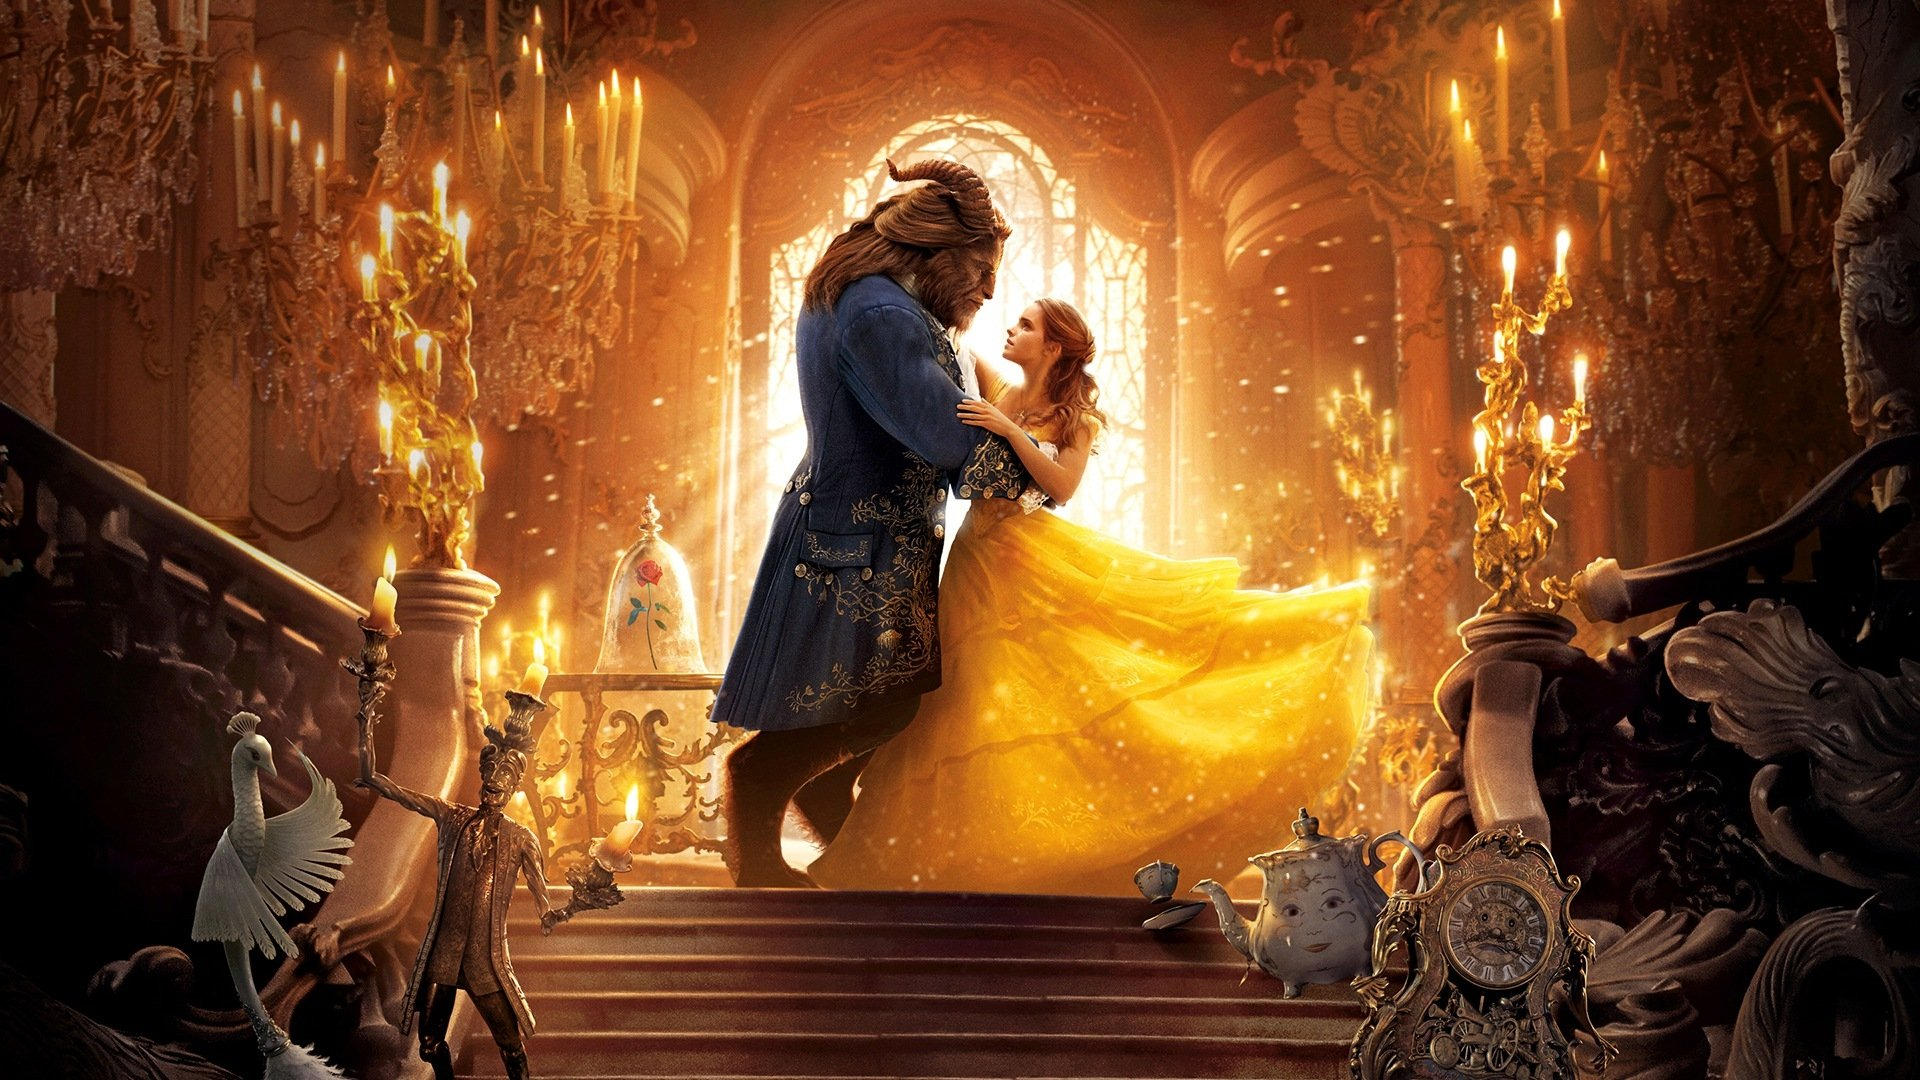 25 Beauty And The Beast 2017 HD Wallpapers Background Images 1920x1080